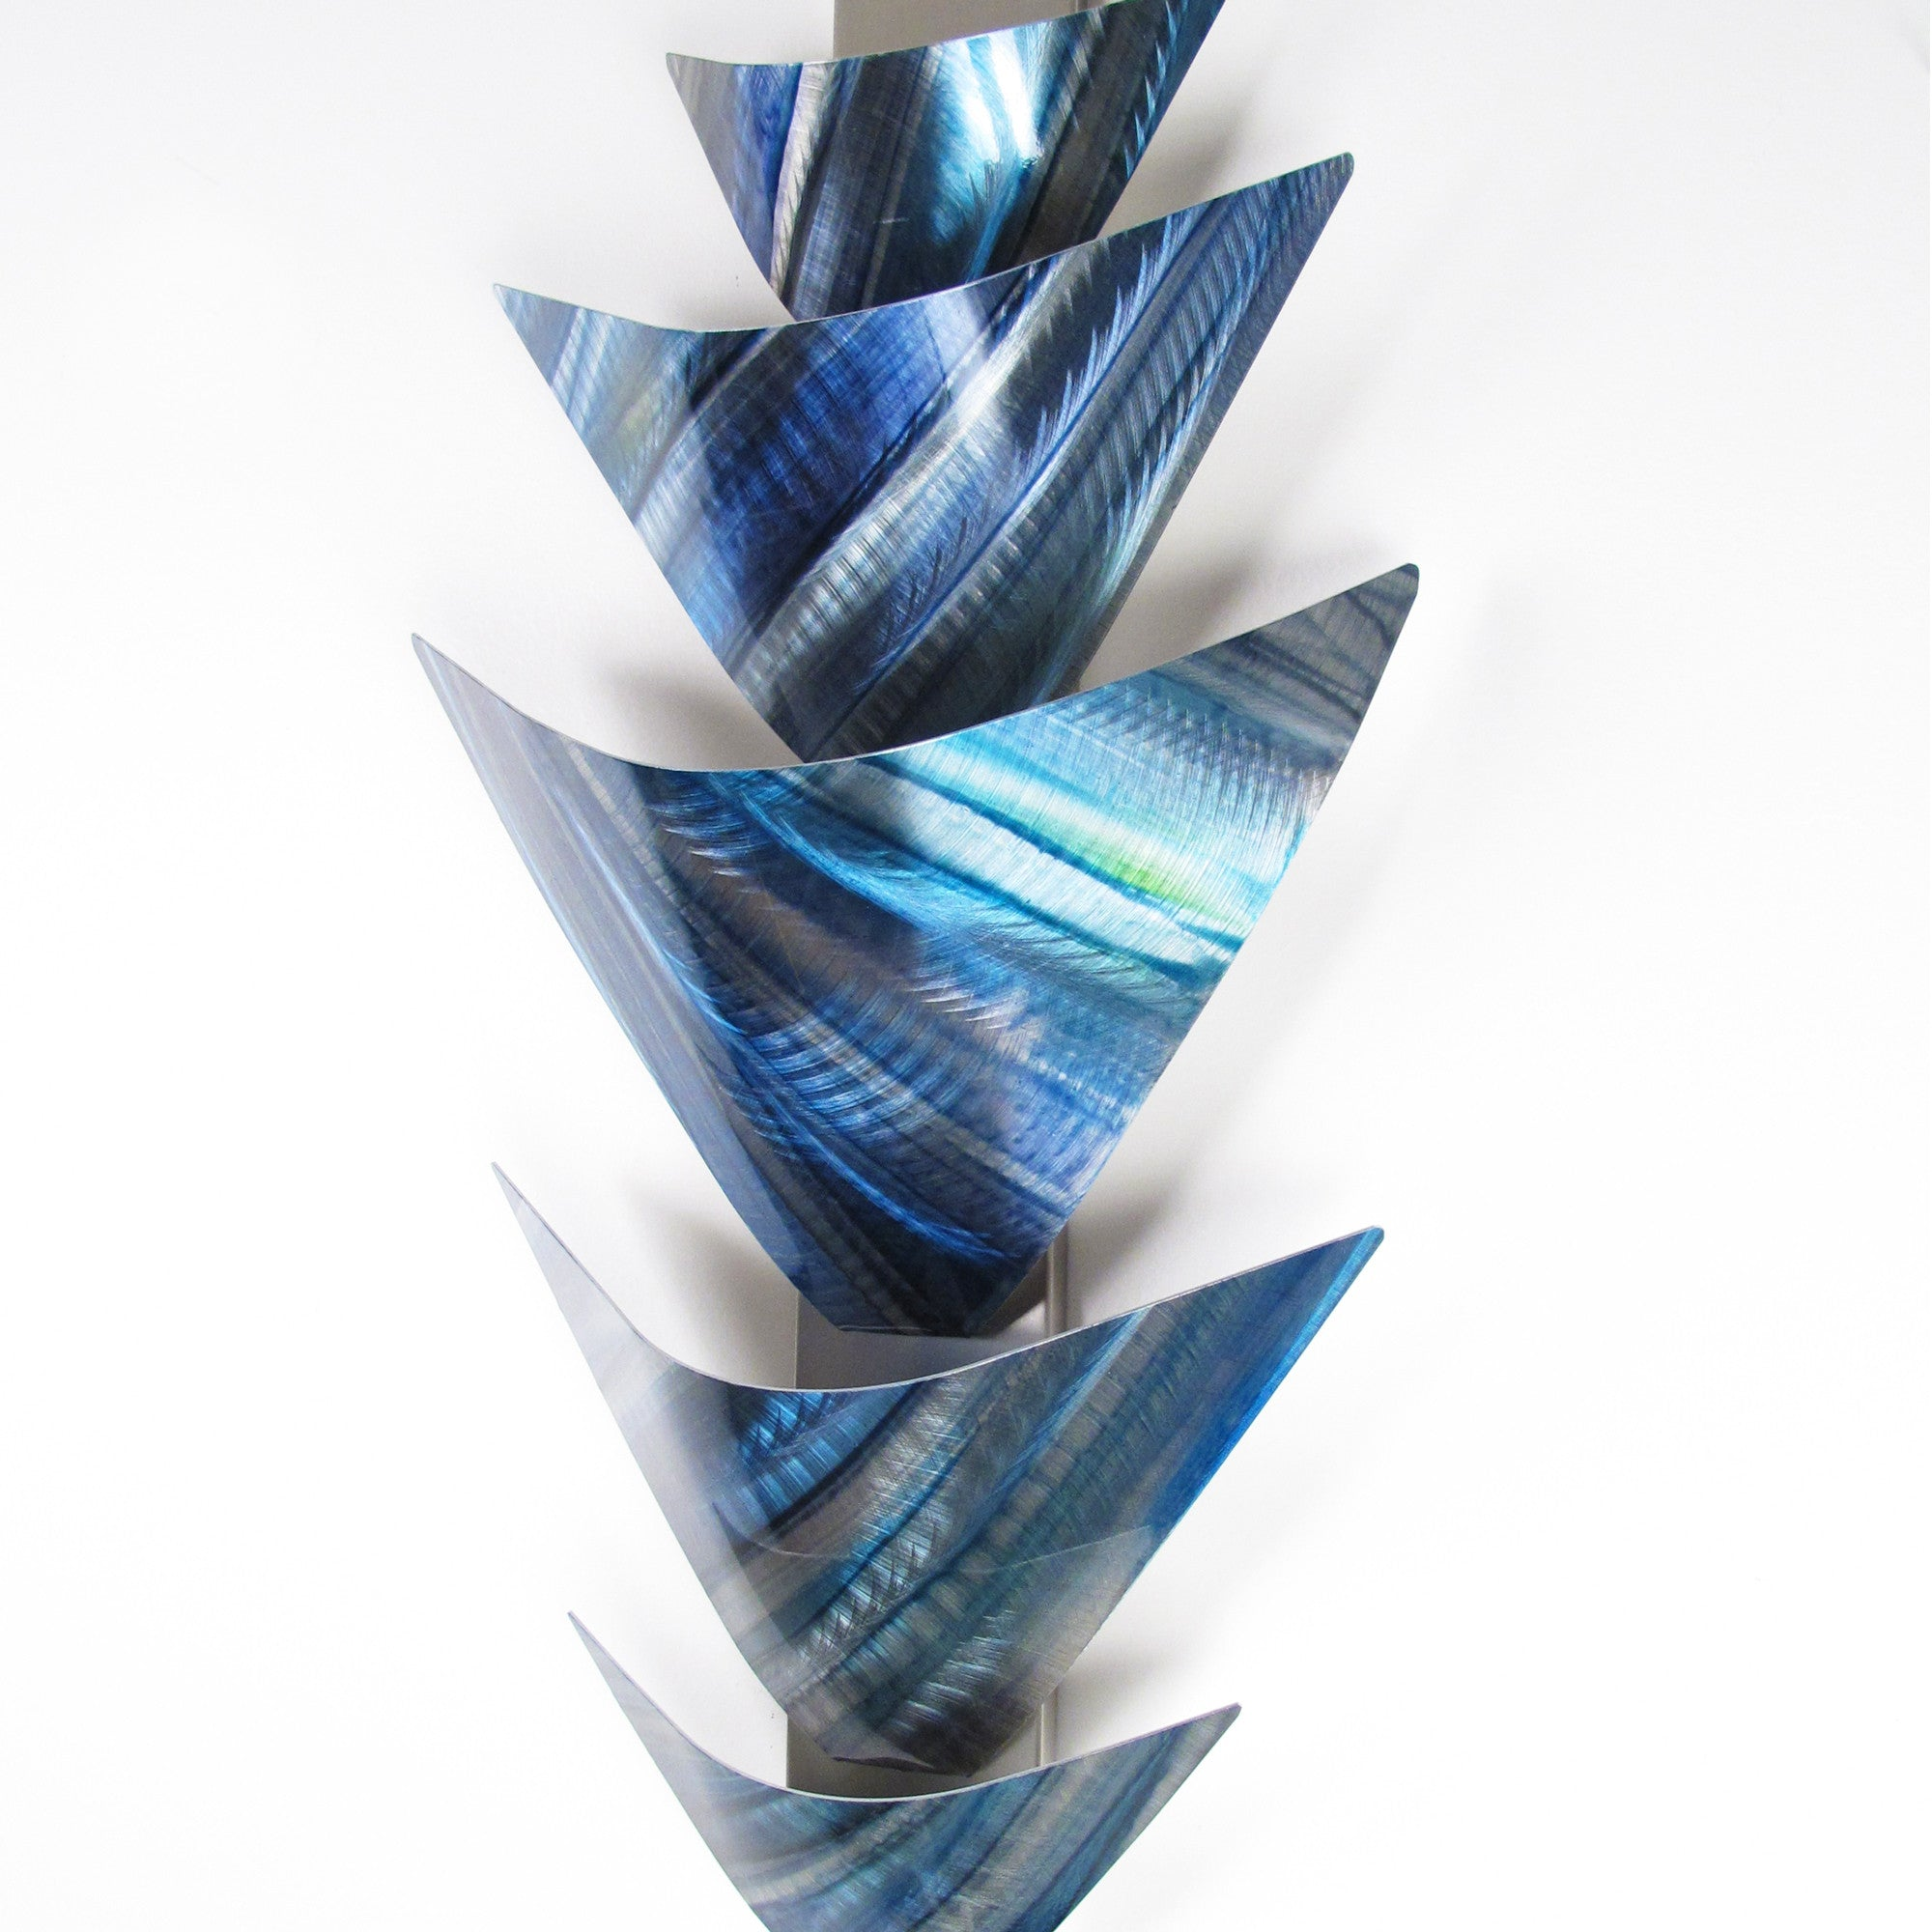 "Blue Metal Wall Art Cool Aurora Torchiere Series"" 40""x24"" Modern Abstract Metal Wall Art Review"